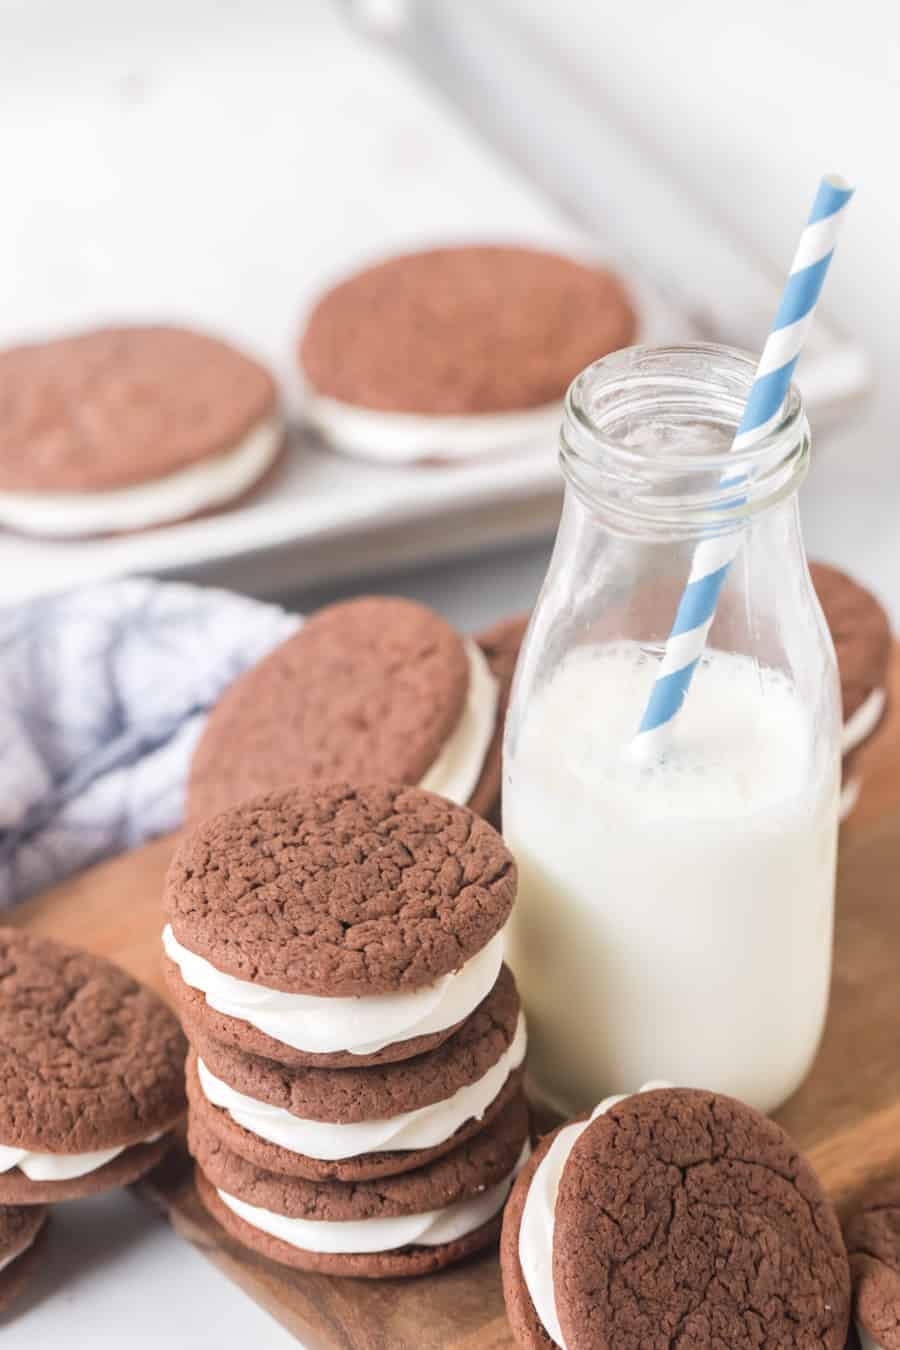 sandwich cookies made with a cake mix next to milk